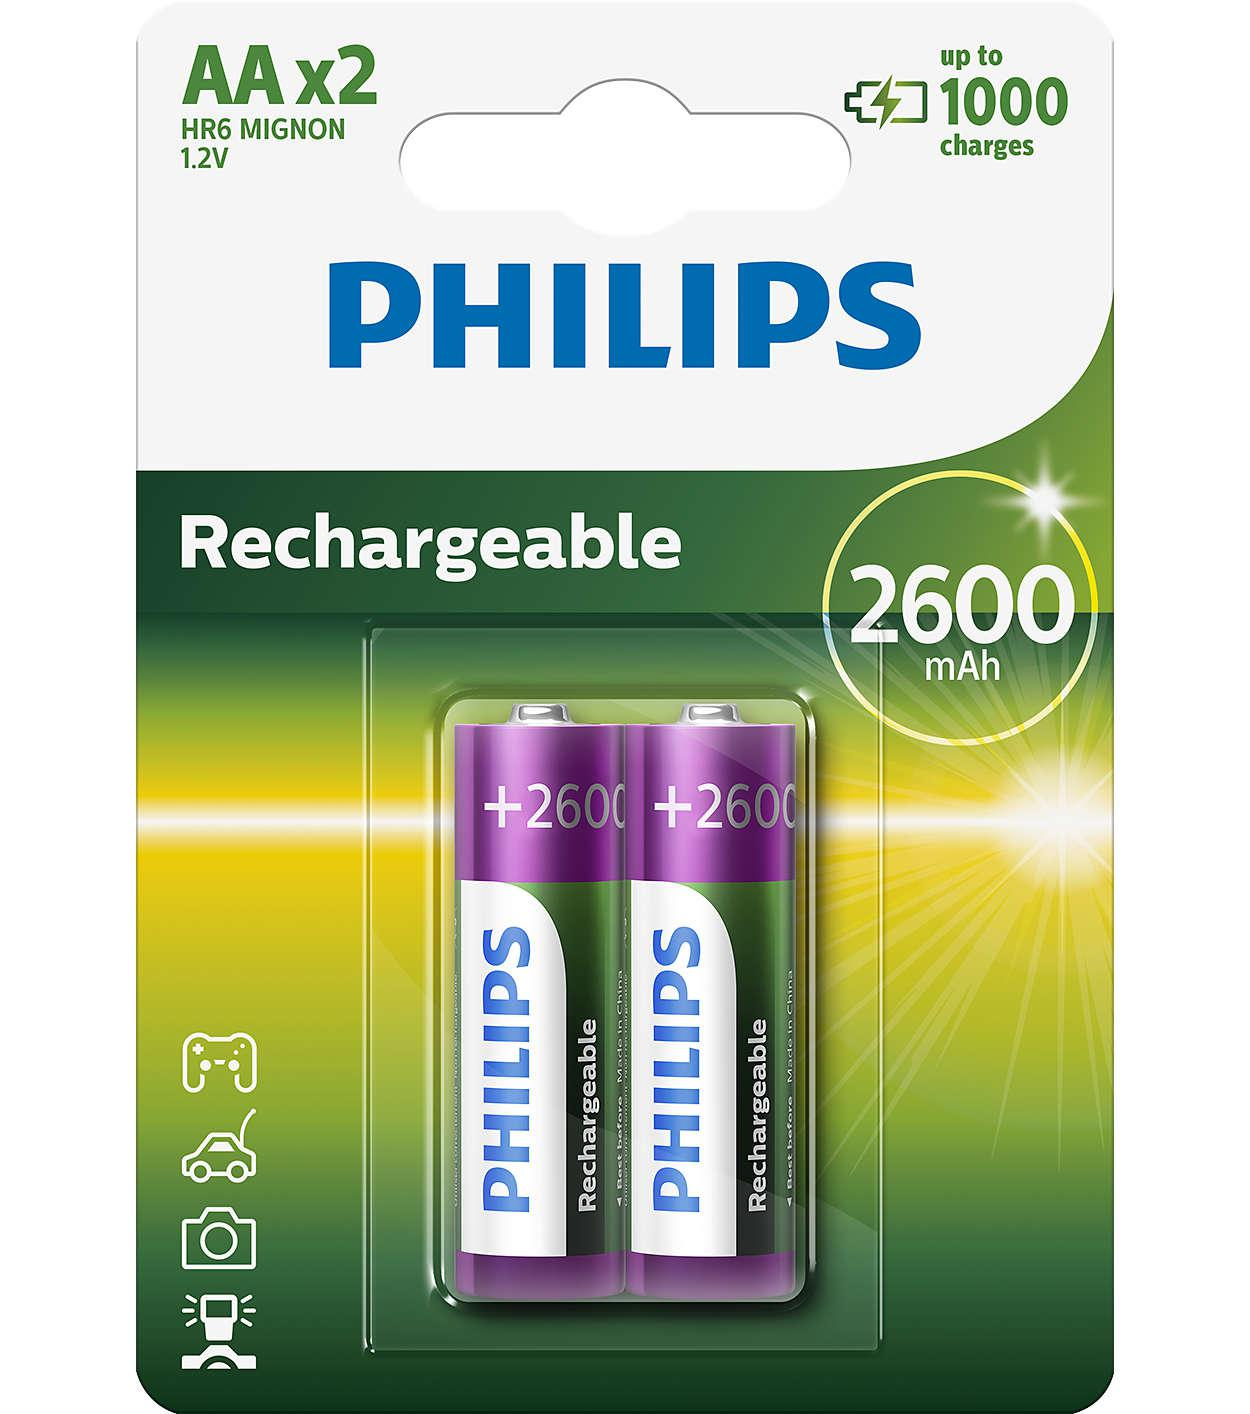 R6 MULTILIFE B2, Батарейка Philips Rechargeable 2600 mAh AA B2 (2 шт.),